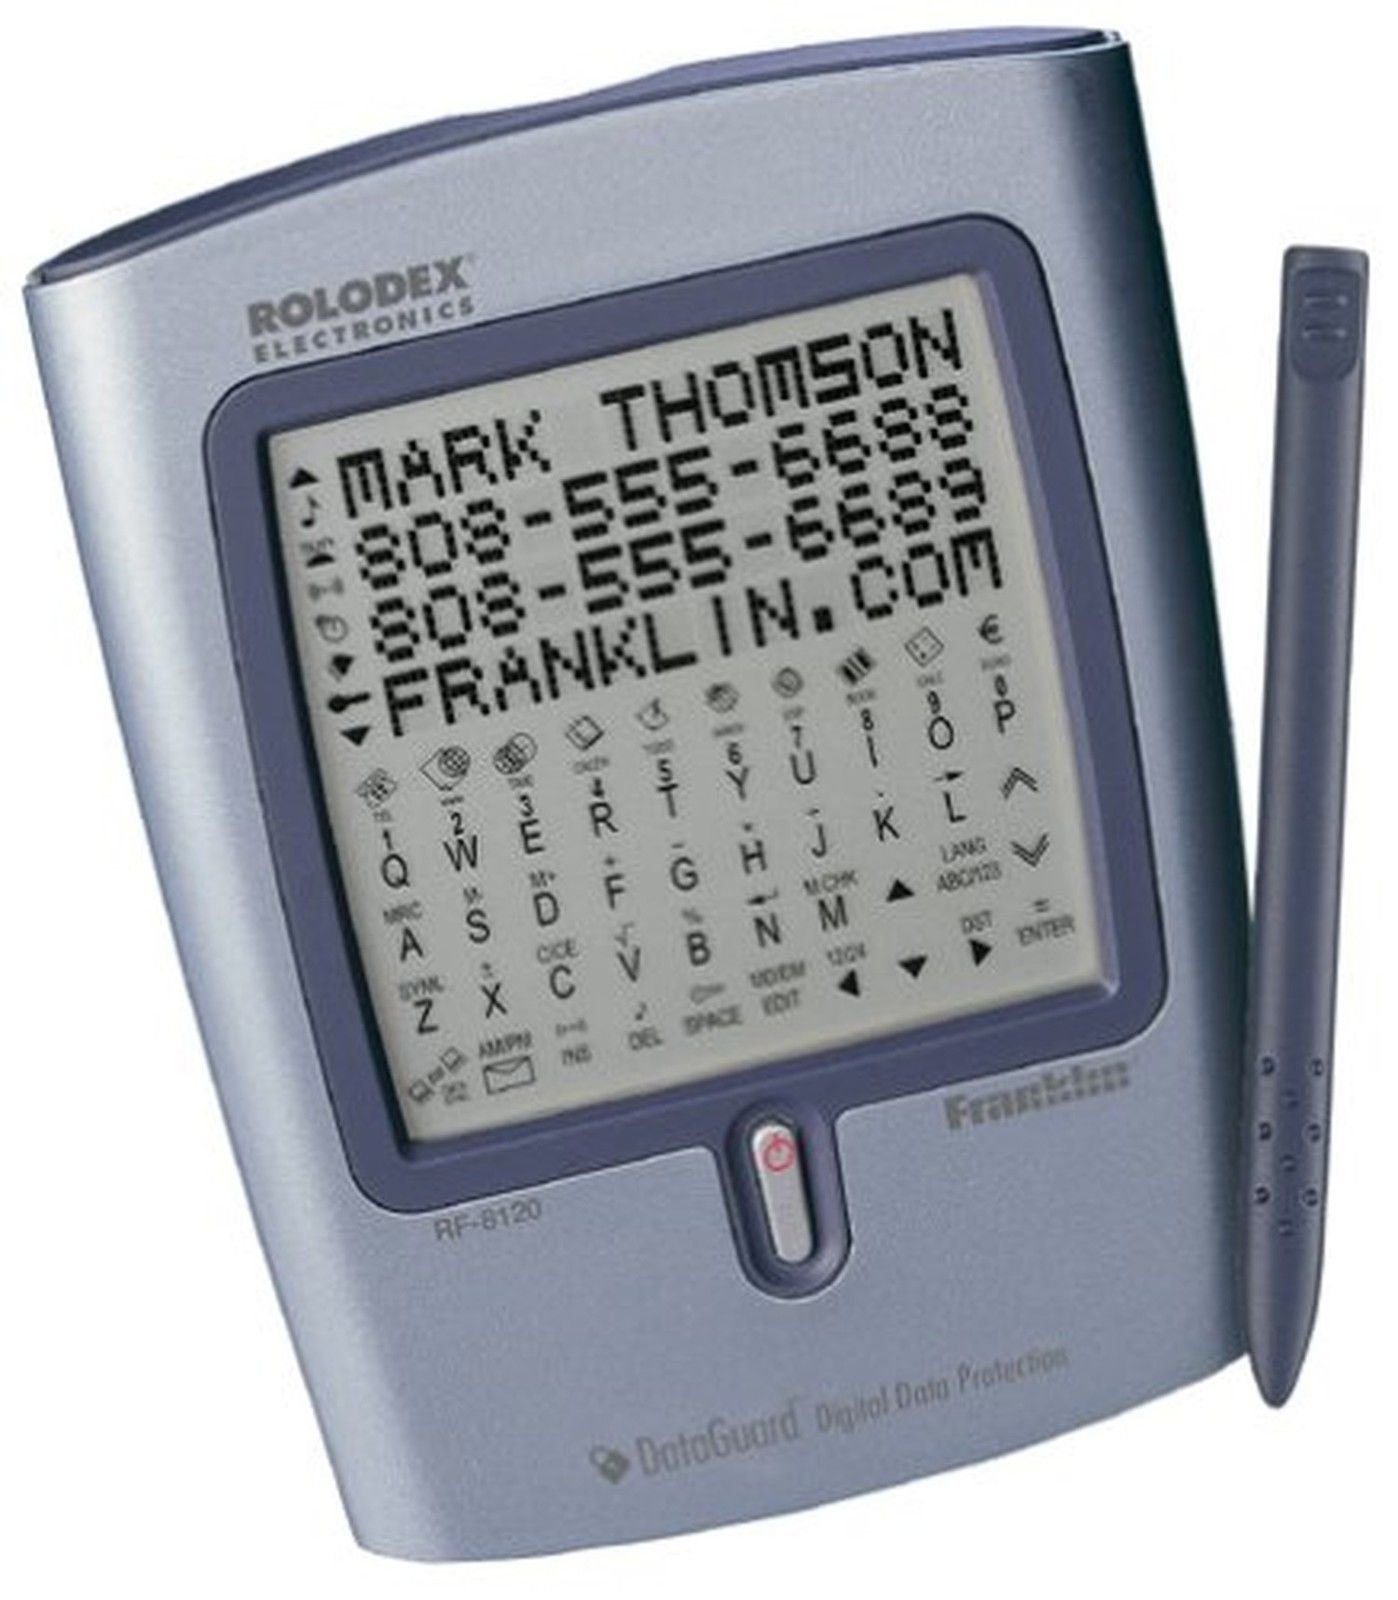 Franklin RF-8120 384K Palm Style Touch Screen PDA Franklin offers a one-year warranty 4-line, adjustable contrast display